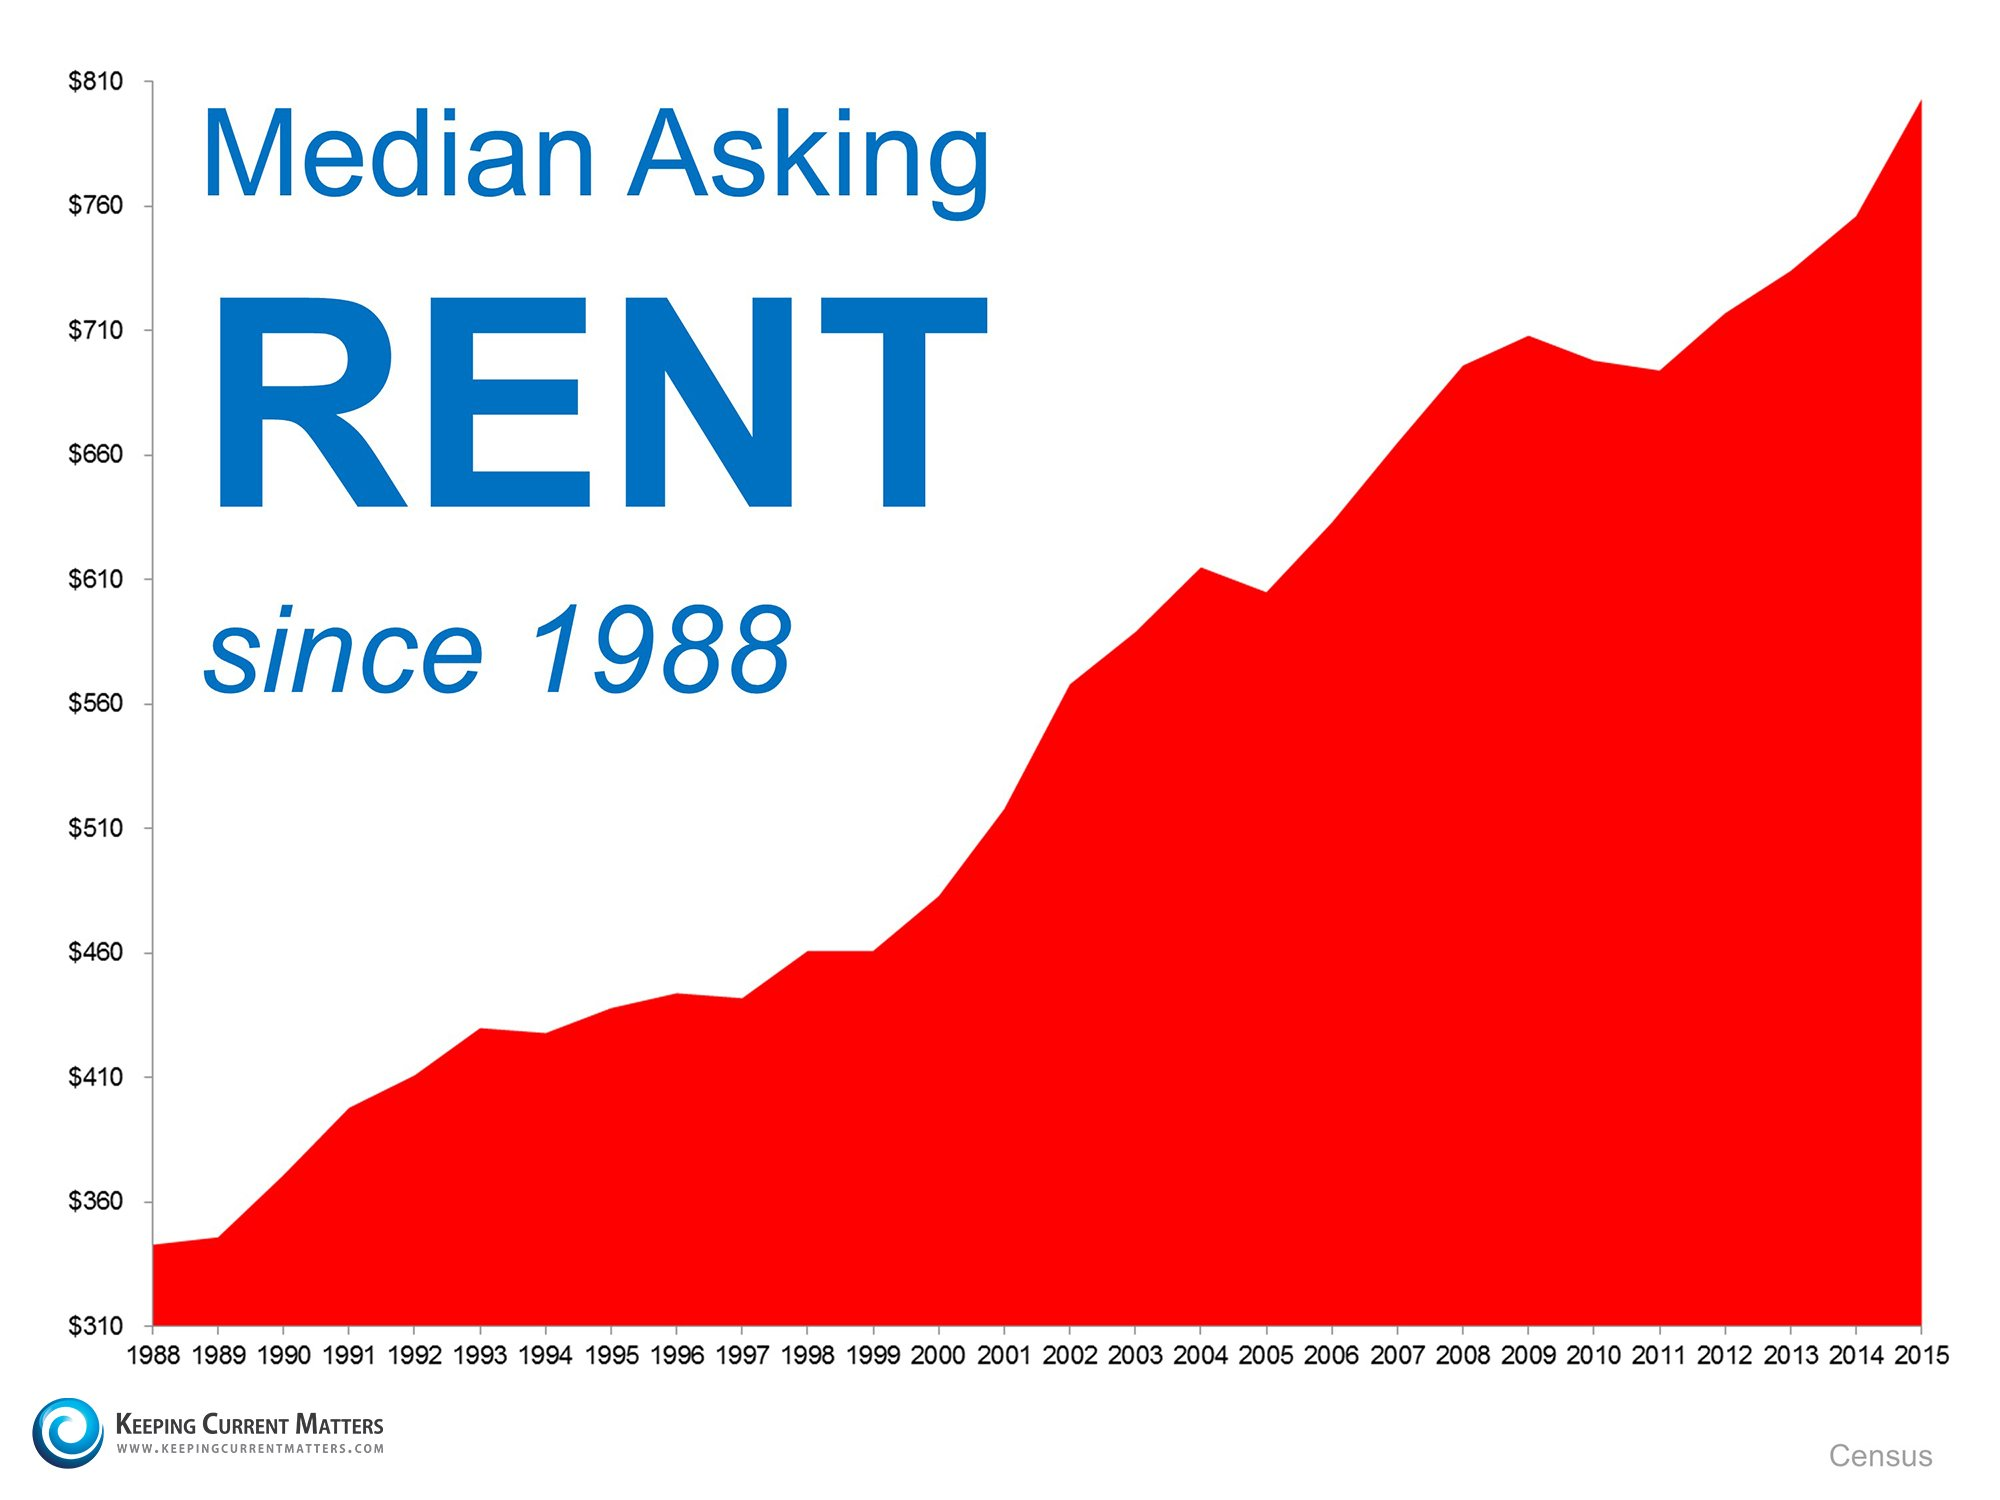 Median Asking Rents | Keeping Current Matters